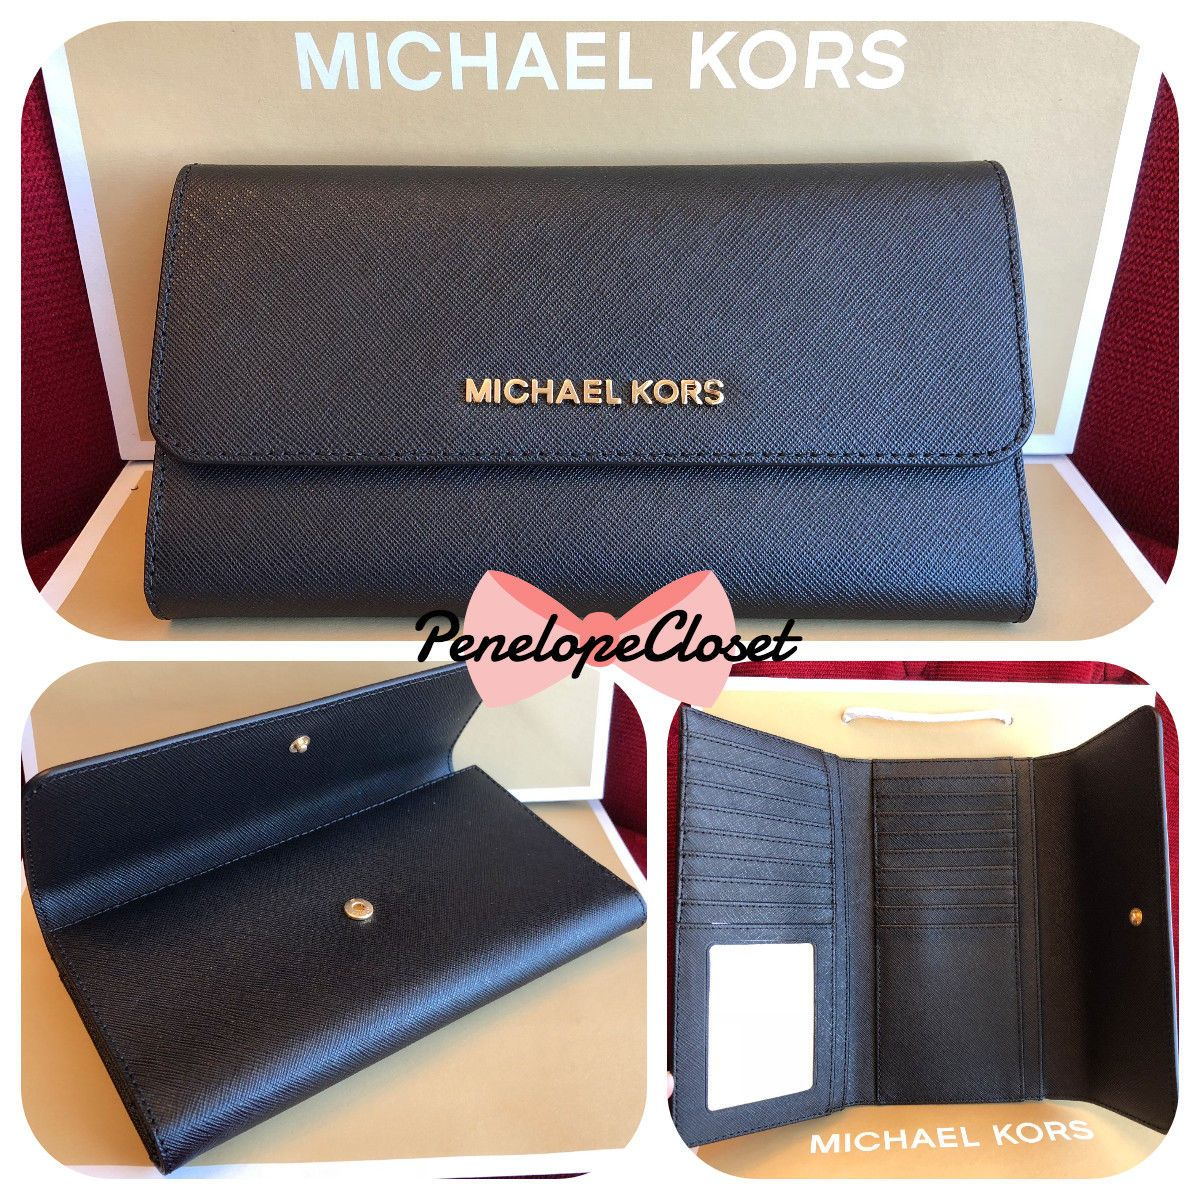 53b3bb95b9 NWT MICHAEL KORS JET SET TRAVEL SAFFIANO LEATHER LARGE TRIFOLD WALLET IN  BLACK